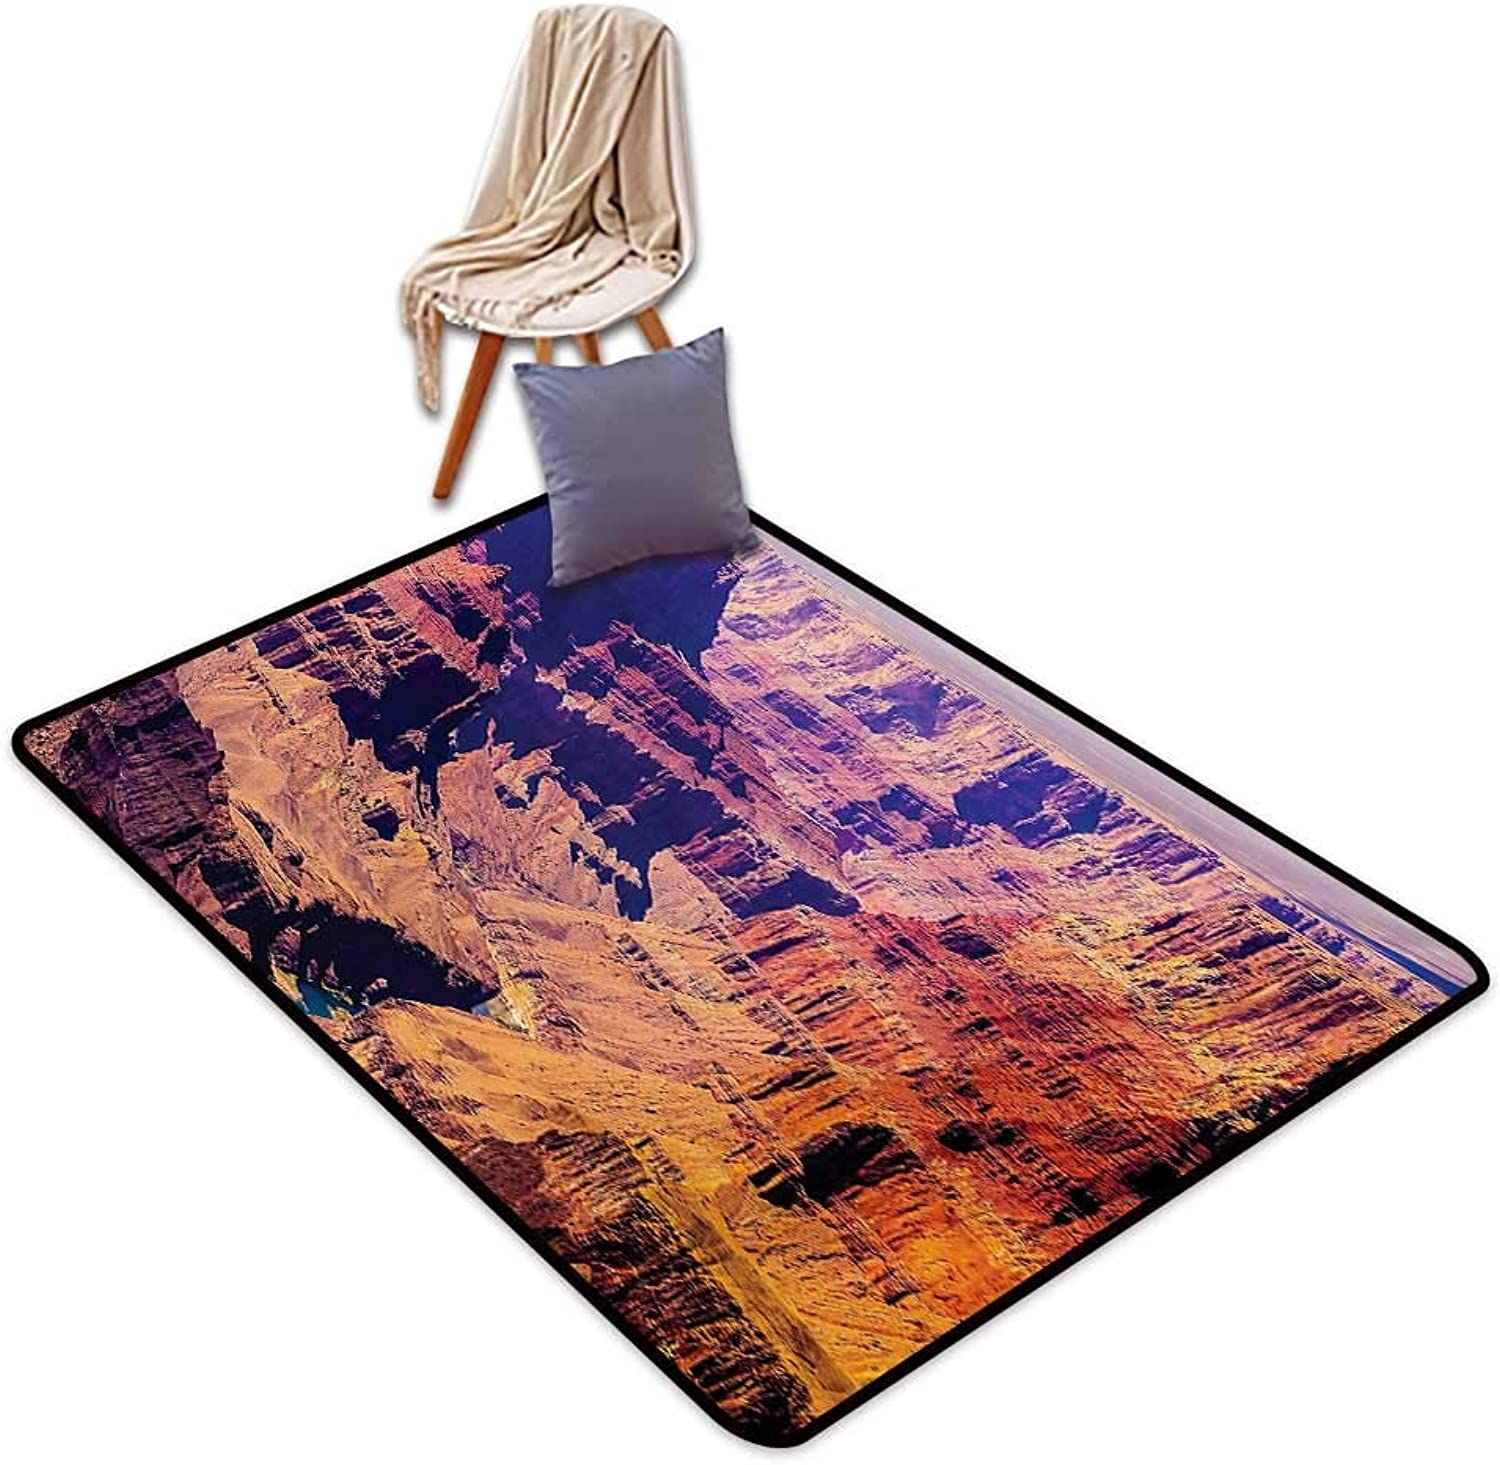 Canyon Large Outdoor Indoor Rubber Doormat Grand Canyon in Arizona with Base Elevations North American Sublime Tribal Landscape Water Absorption, Anti-Skid and Oil Proof 48  Wx59 L Brown